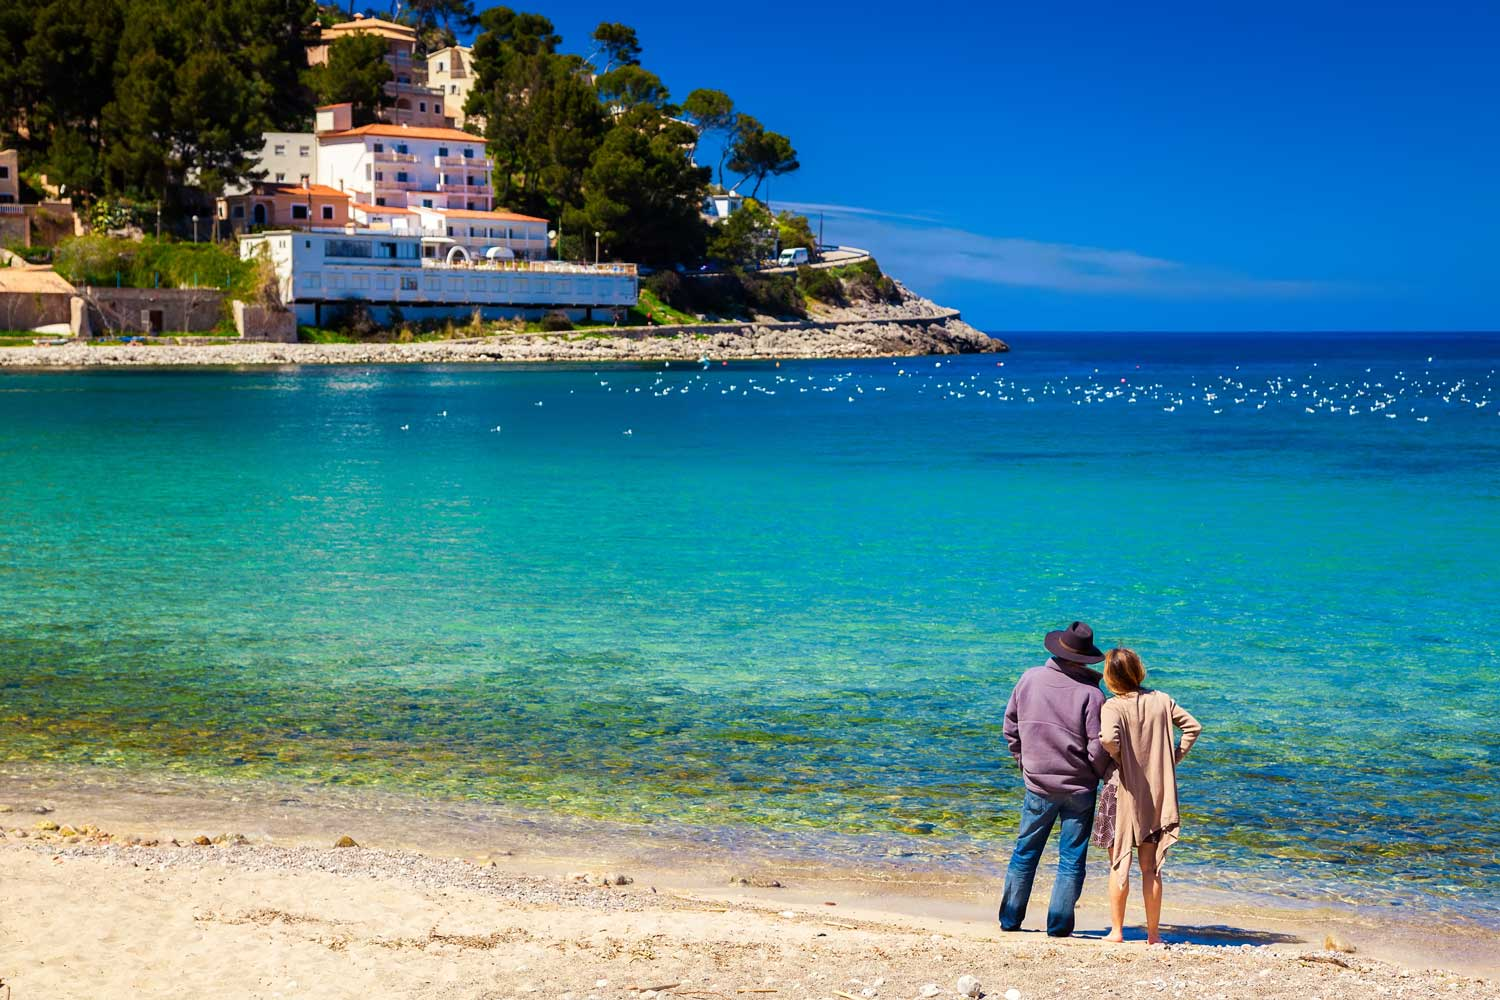 bigstock-Couple-Standing-At-The-Beach-98424761